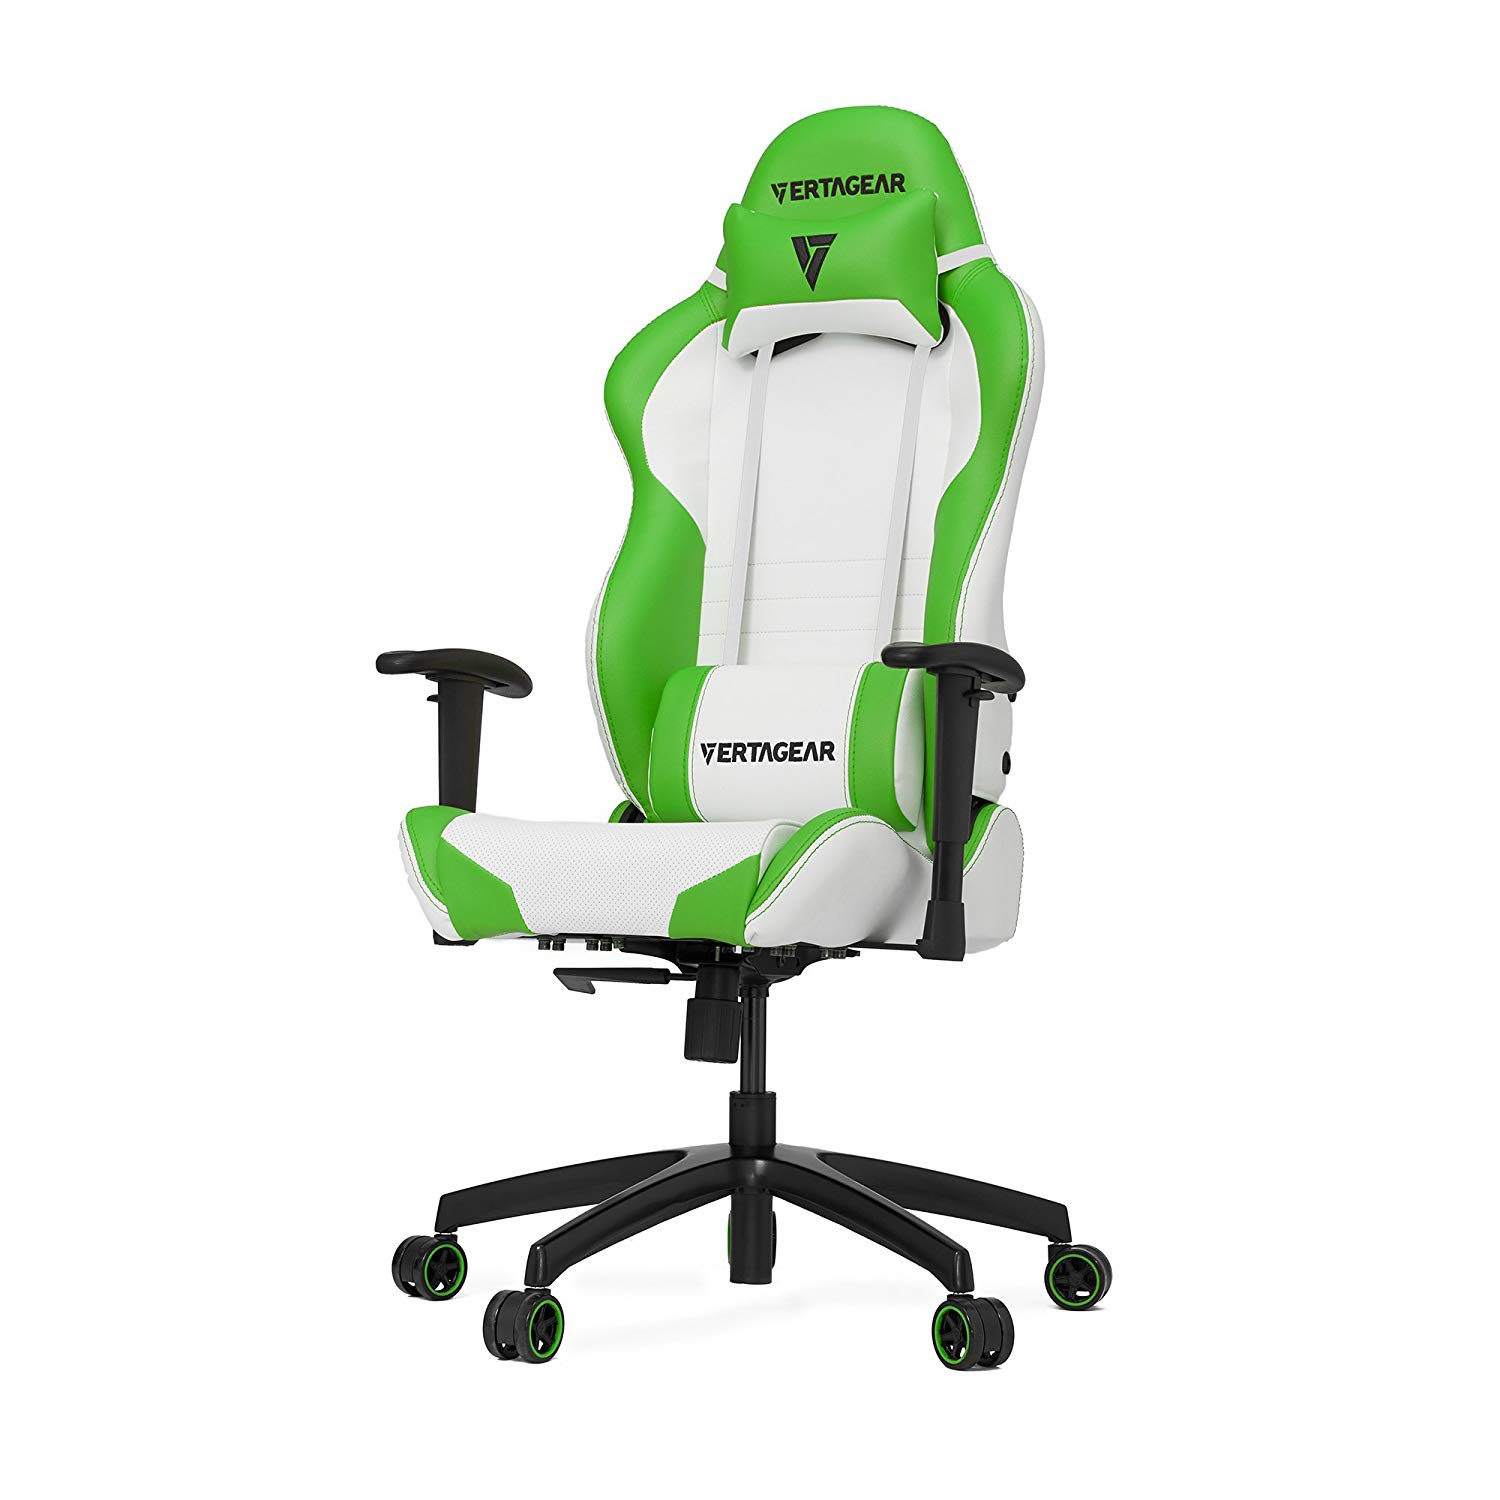 Vertagear VG-SL2000 Padded seat Padded backrest office/computer chair